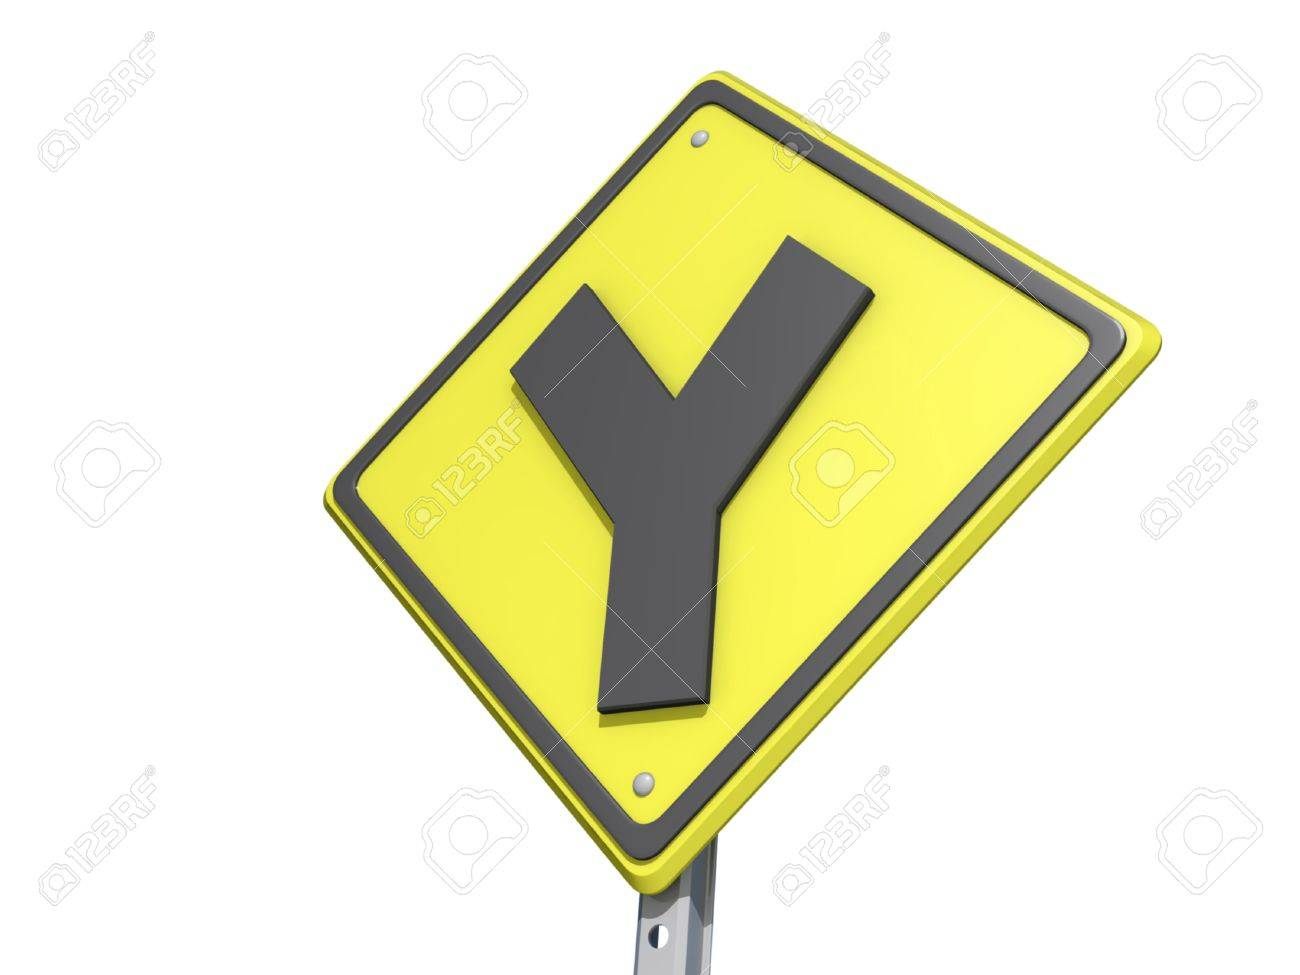 Y Intersection Sign A yield road sign with Y